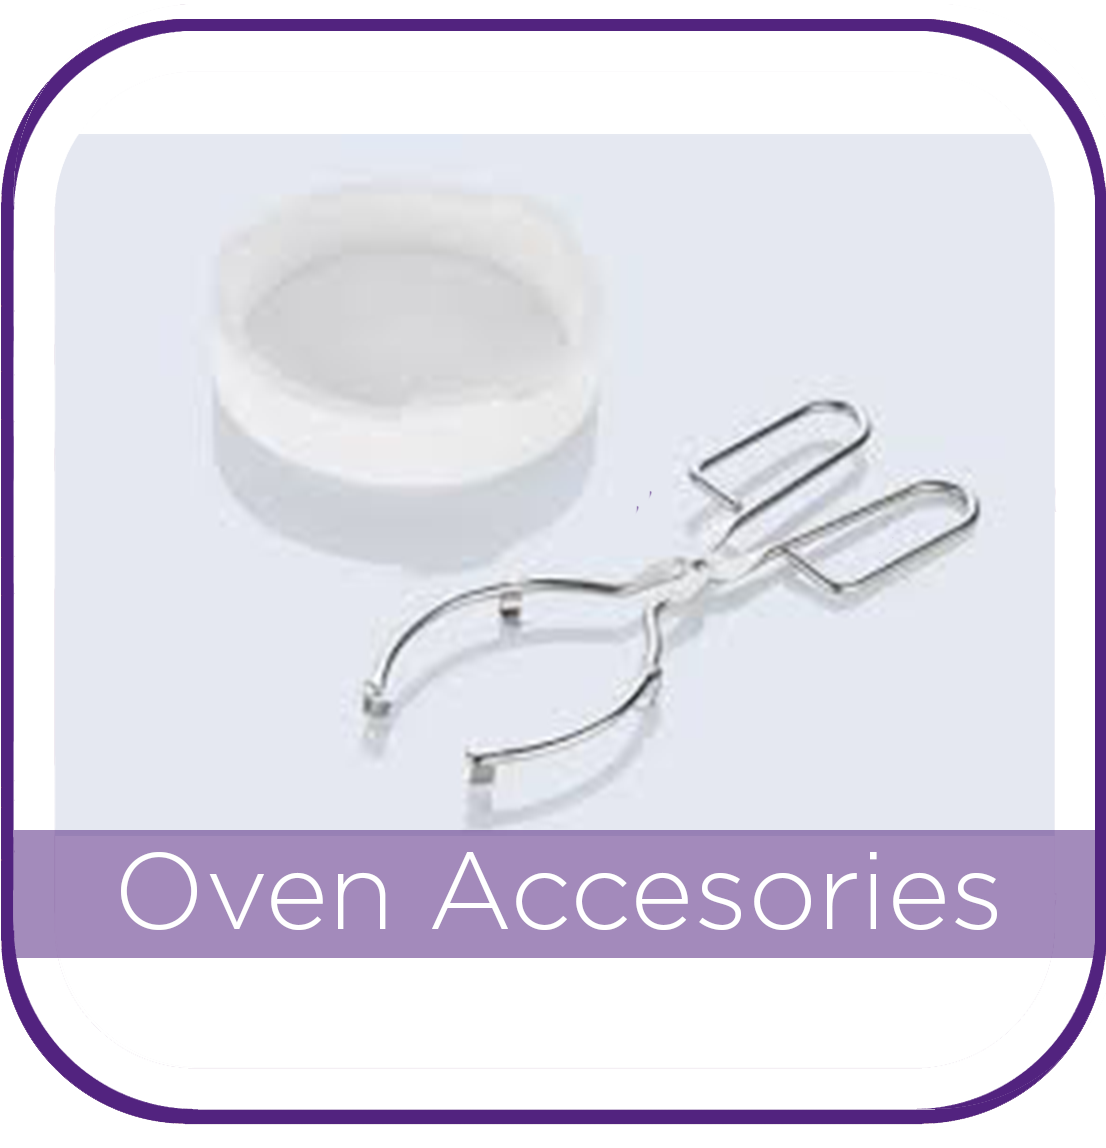 Oven Accessories